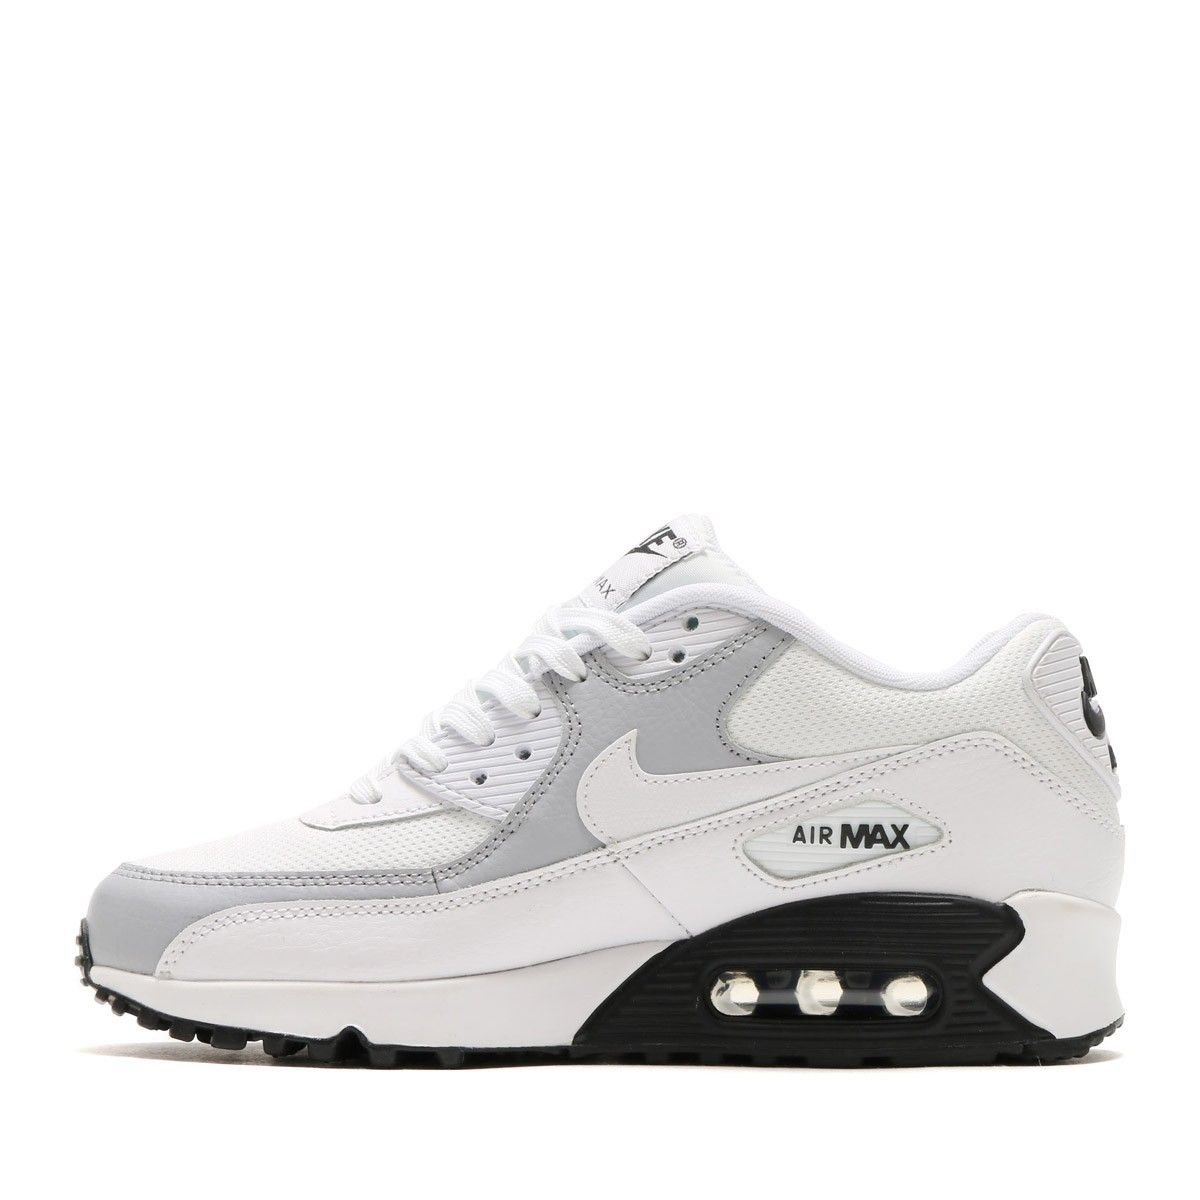 d91fe4a356f2f Nike Basket Nike Air Max 90 - 325213-126. Loading zoom